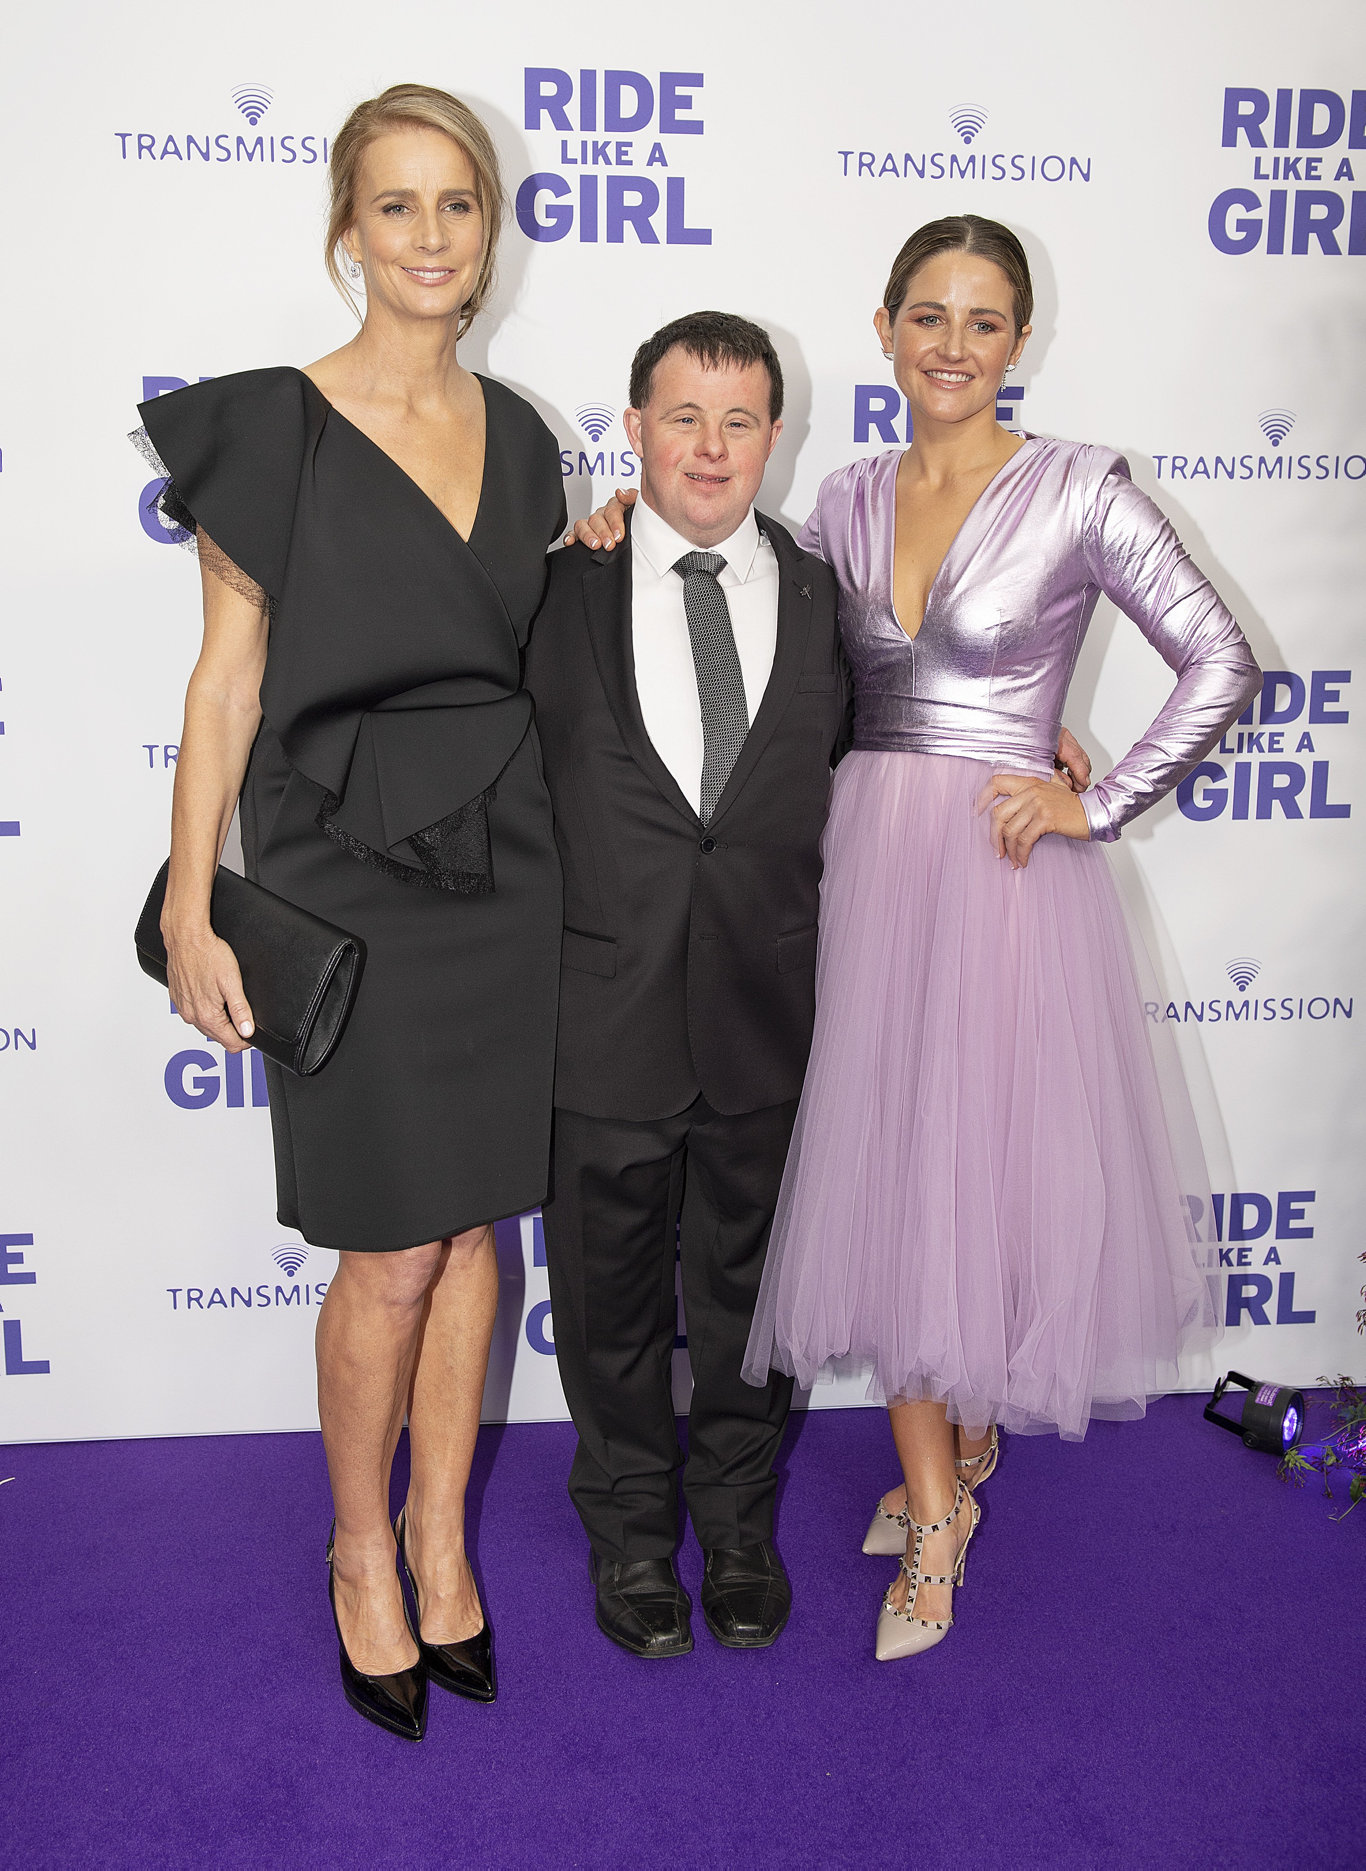 (L-R) Director Rachel Griffiths, Stevie Payne and Michelle Payne during the world premiere of Ride Like A Girl in Melbourne.